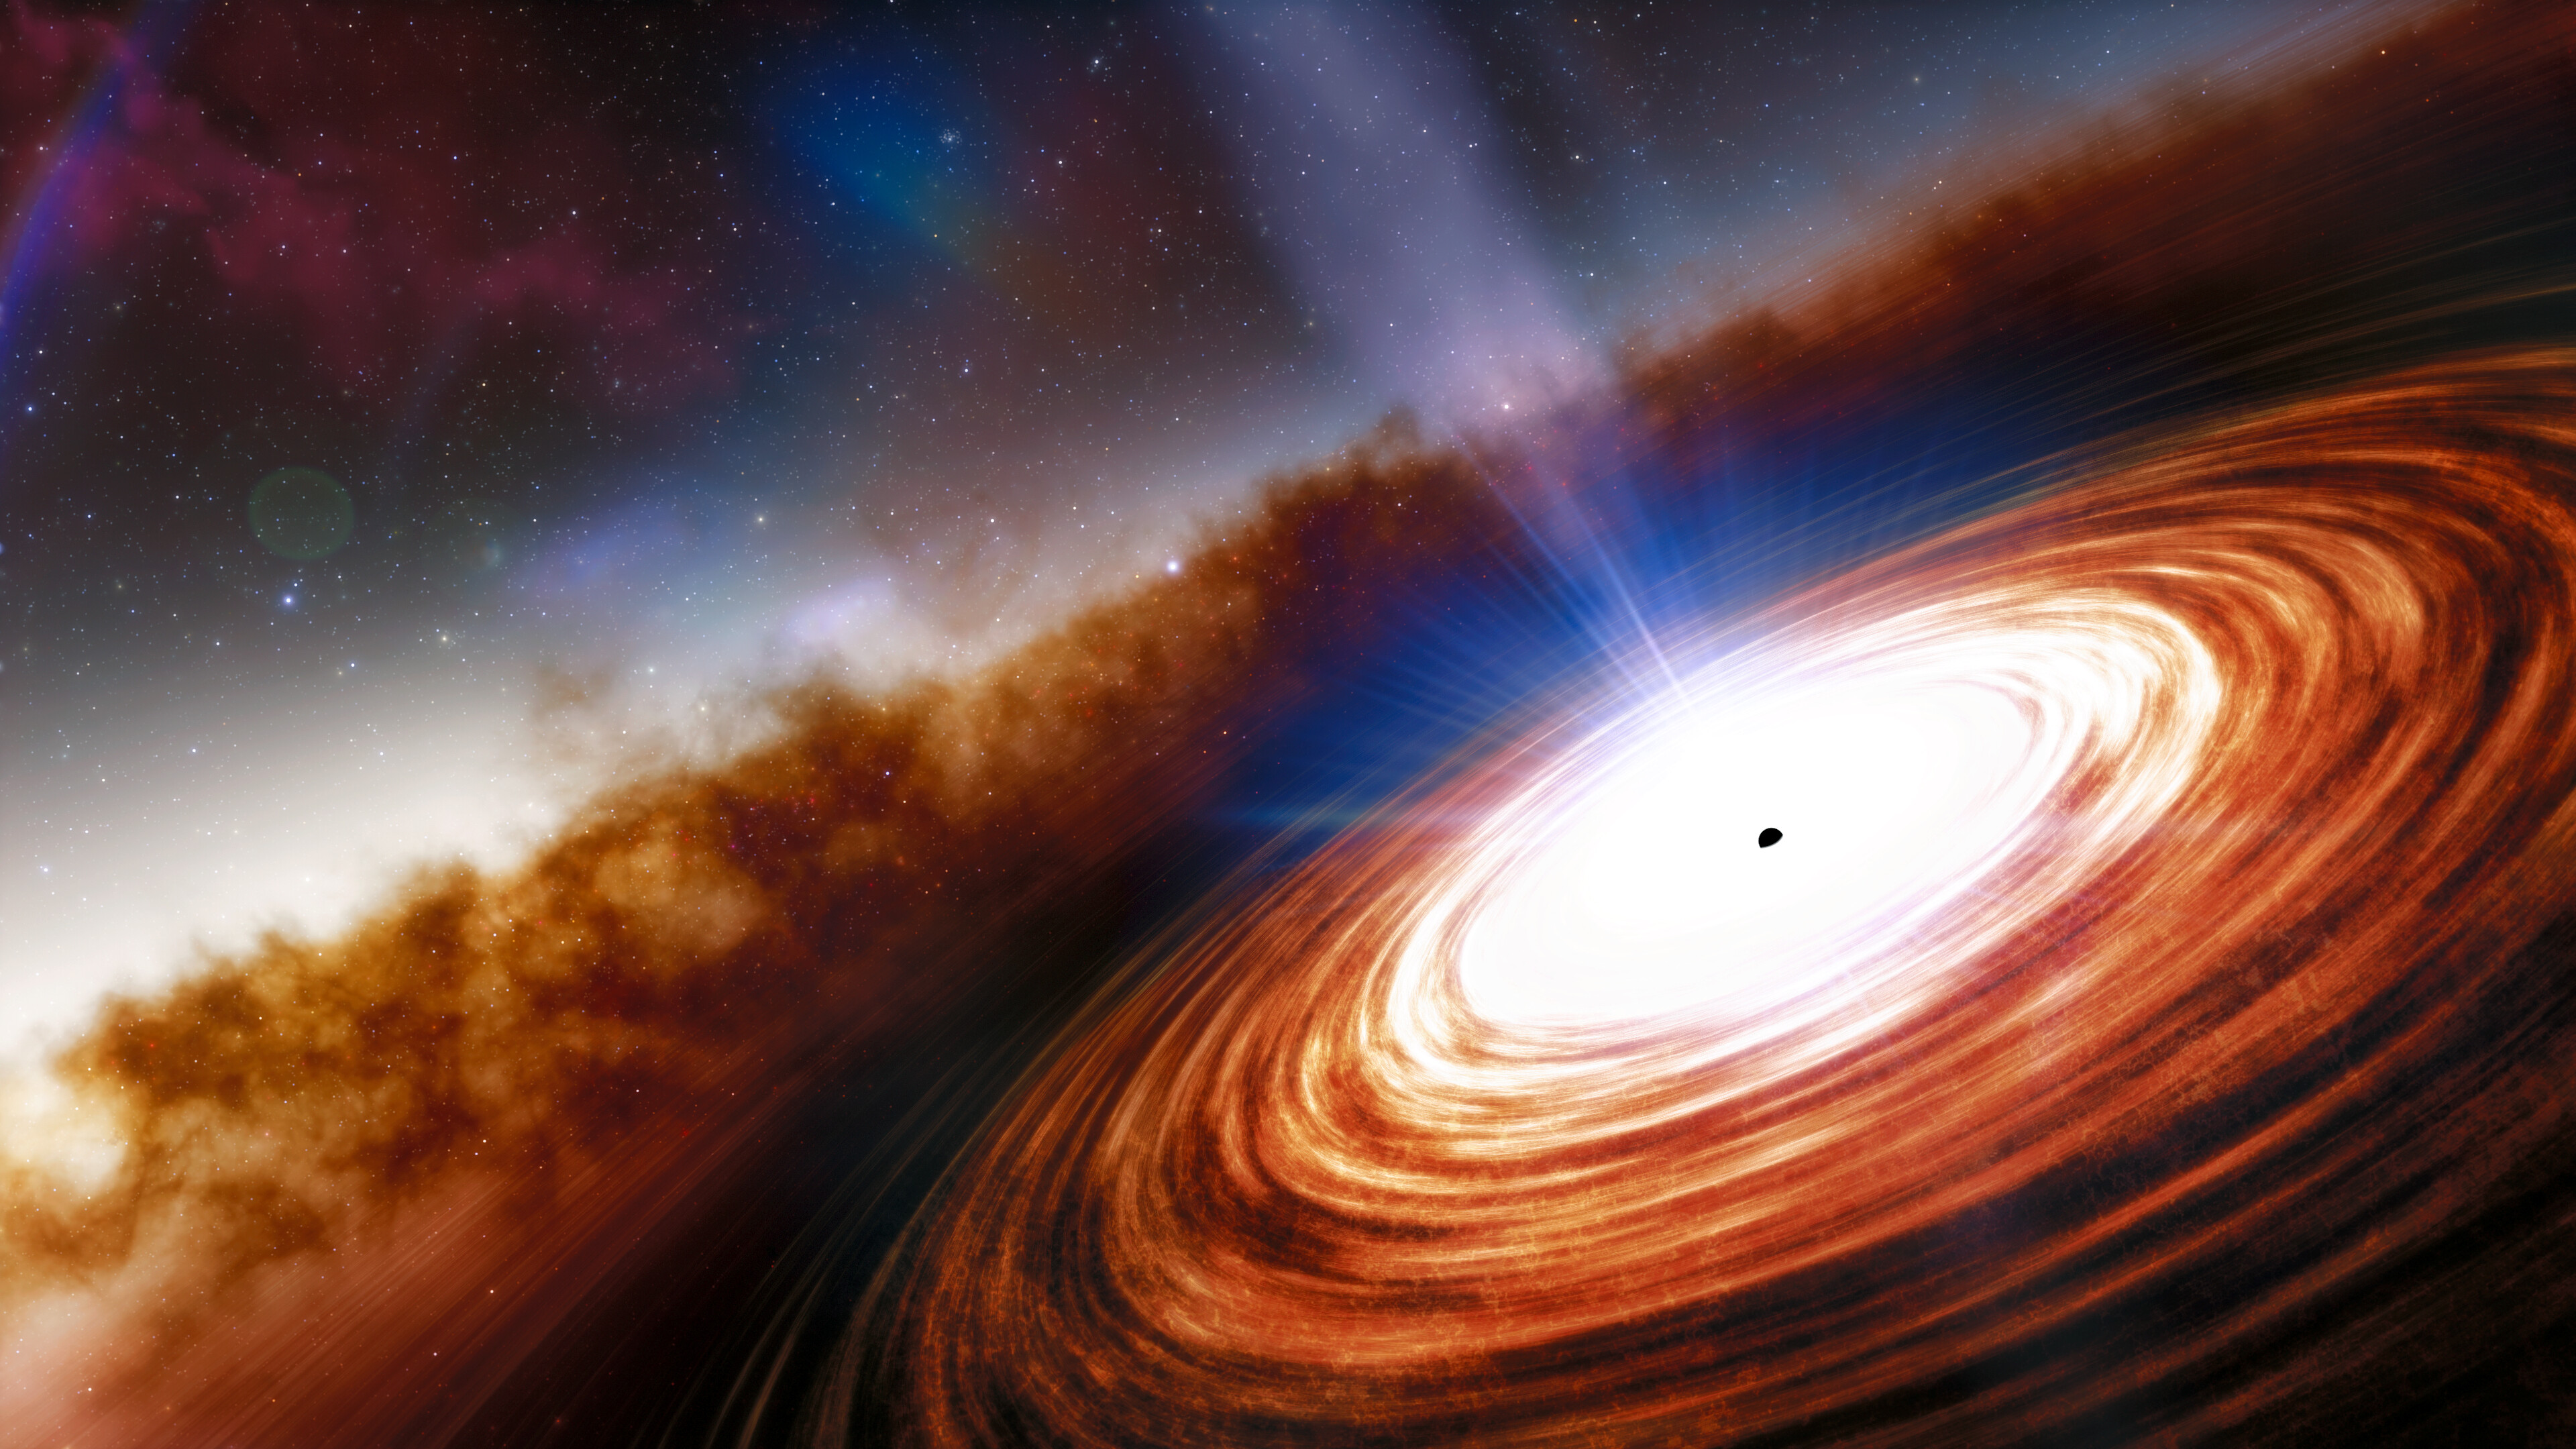 Newswise: The Earliest Supermassive Black Hole and Quasar in the Universe